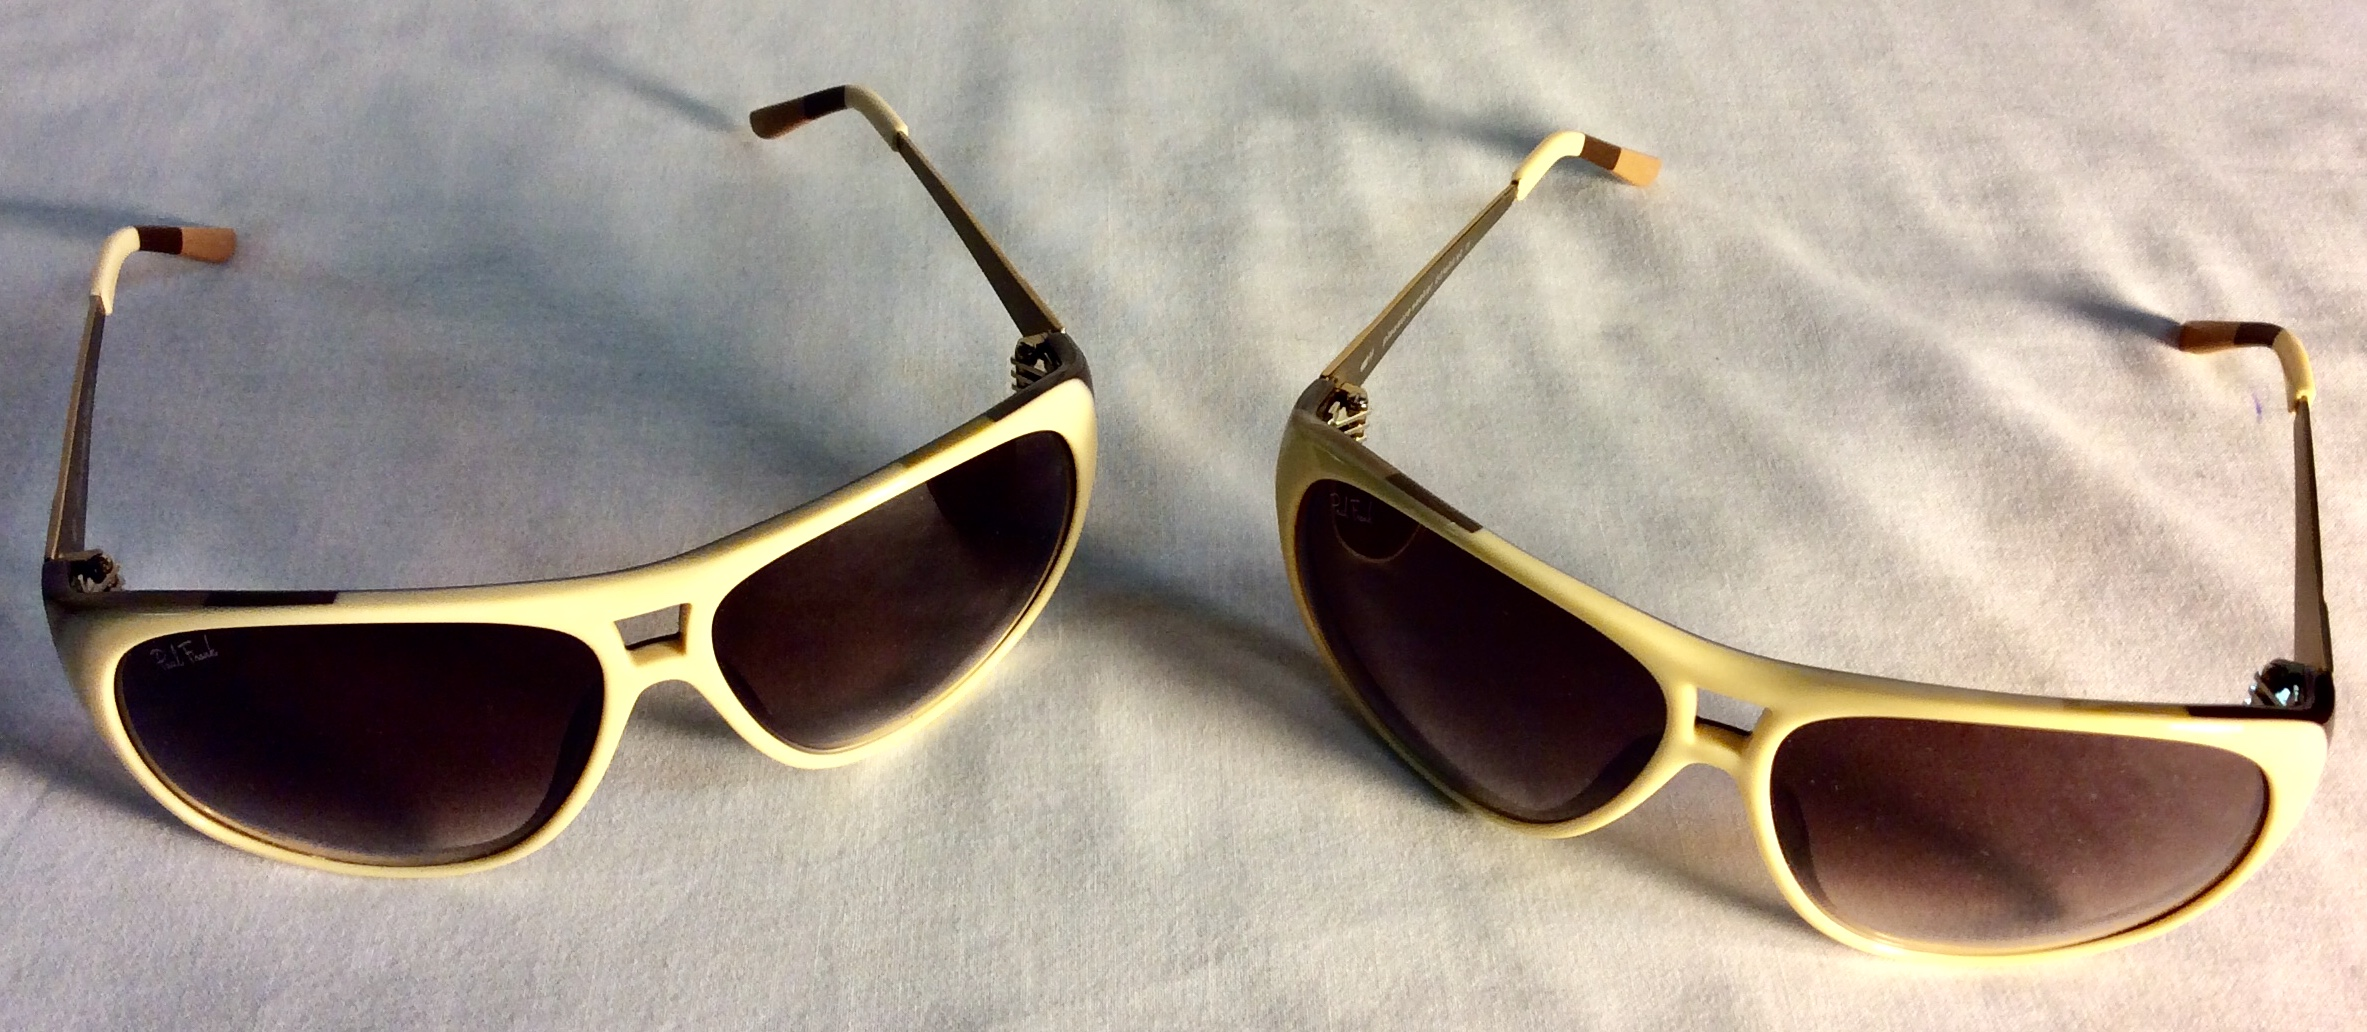 Beige plastic/metal sunglasses